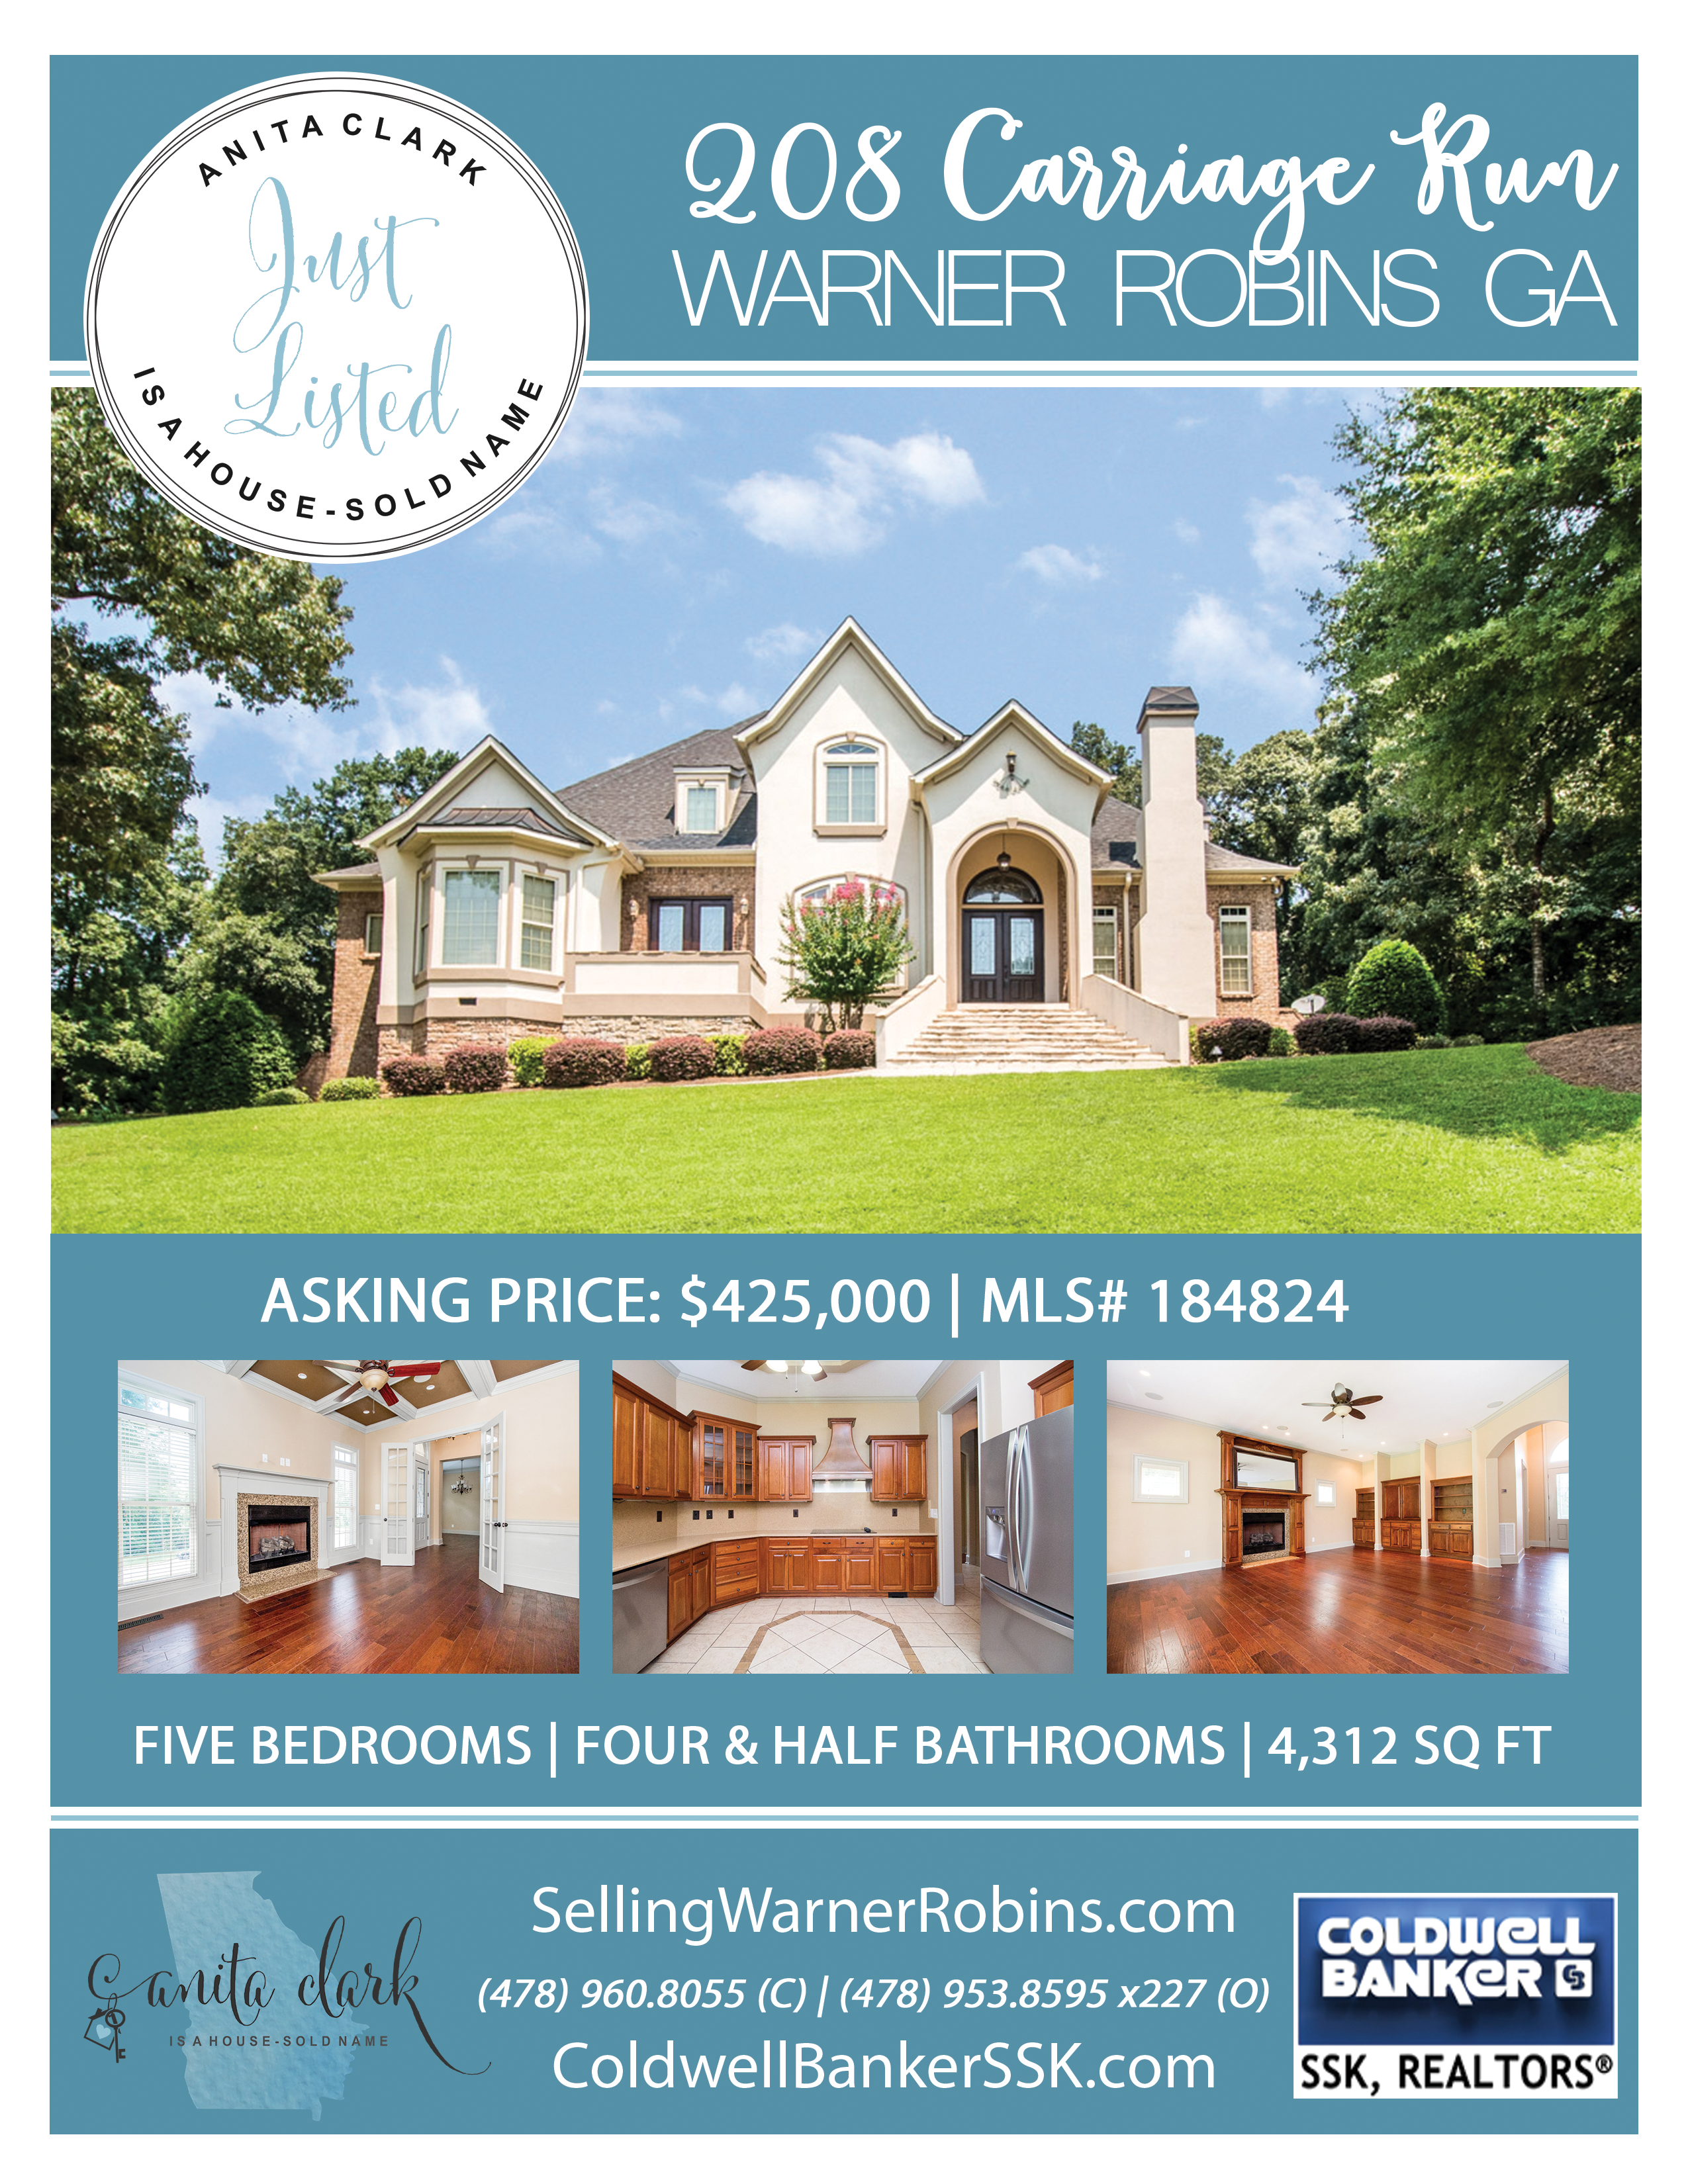 Just Listed in Mill Pond Plantation Subdivision